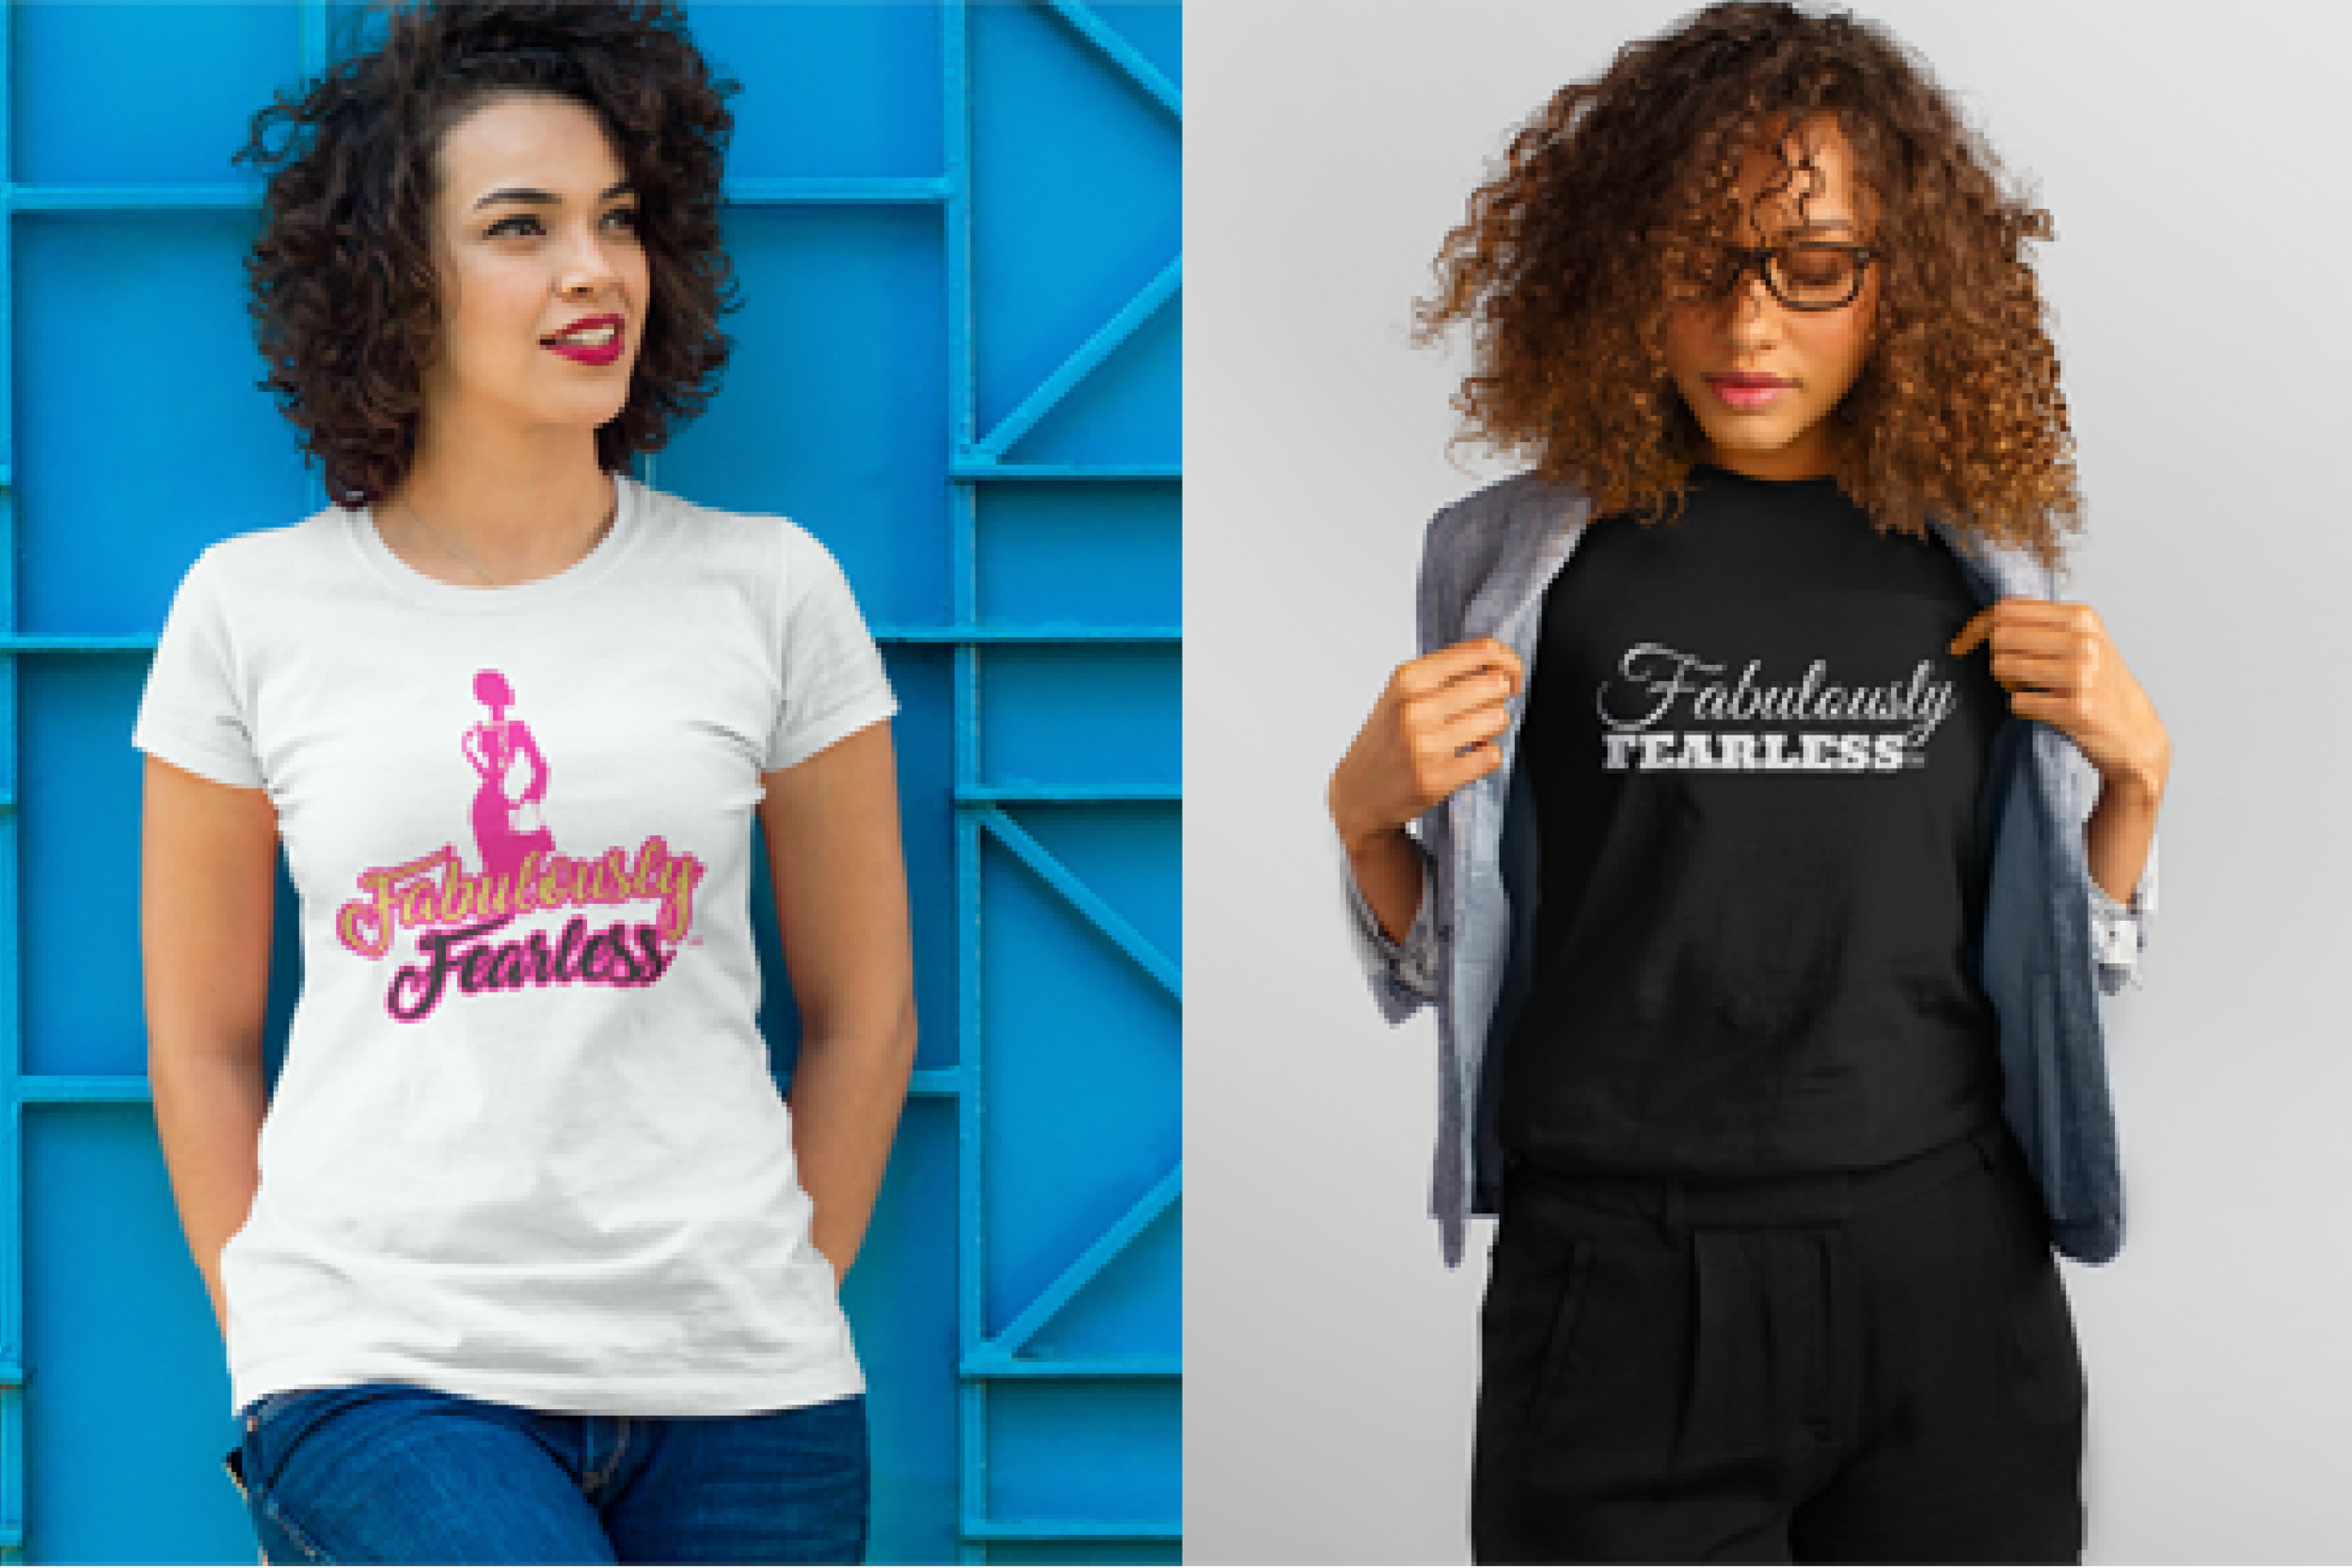 Let the world know your dreams are in drive. #fabulouslyfearless